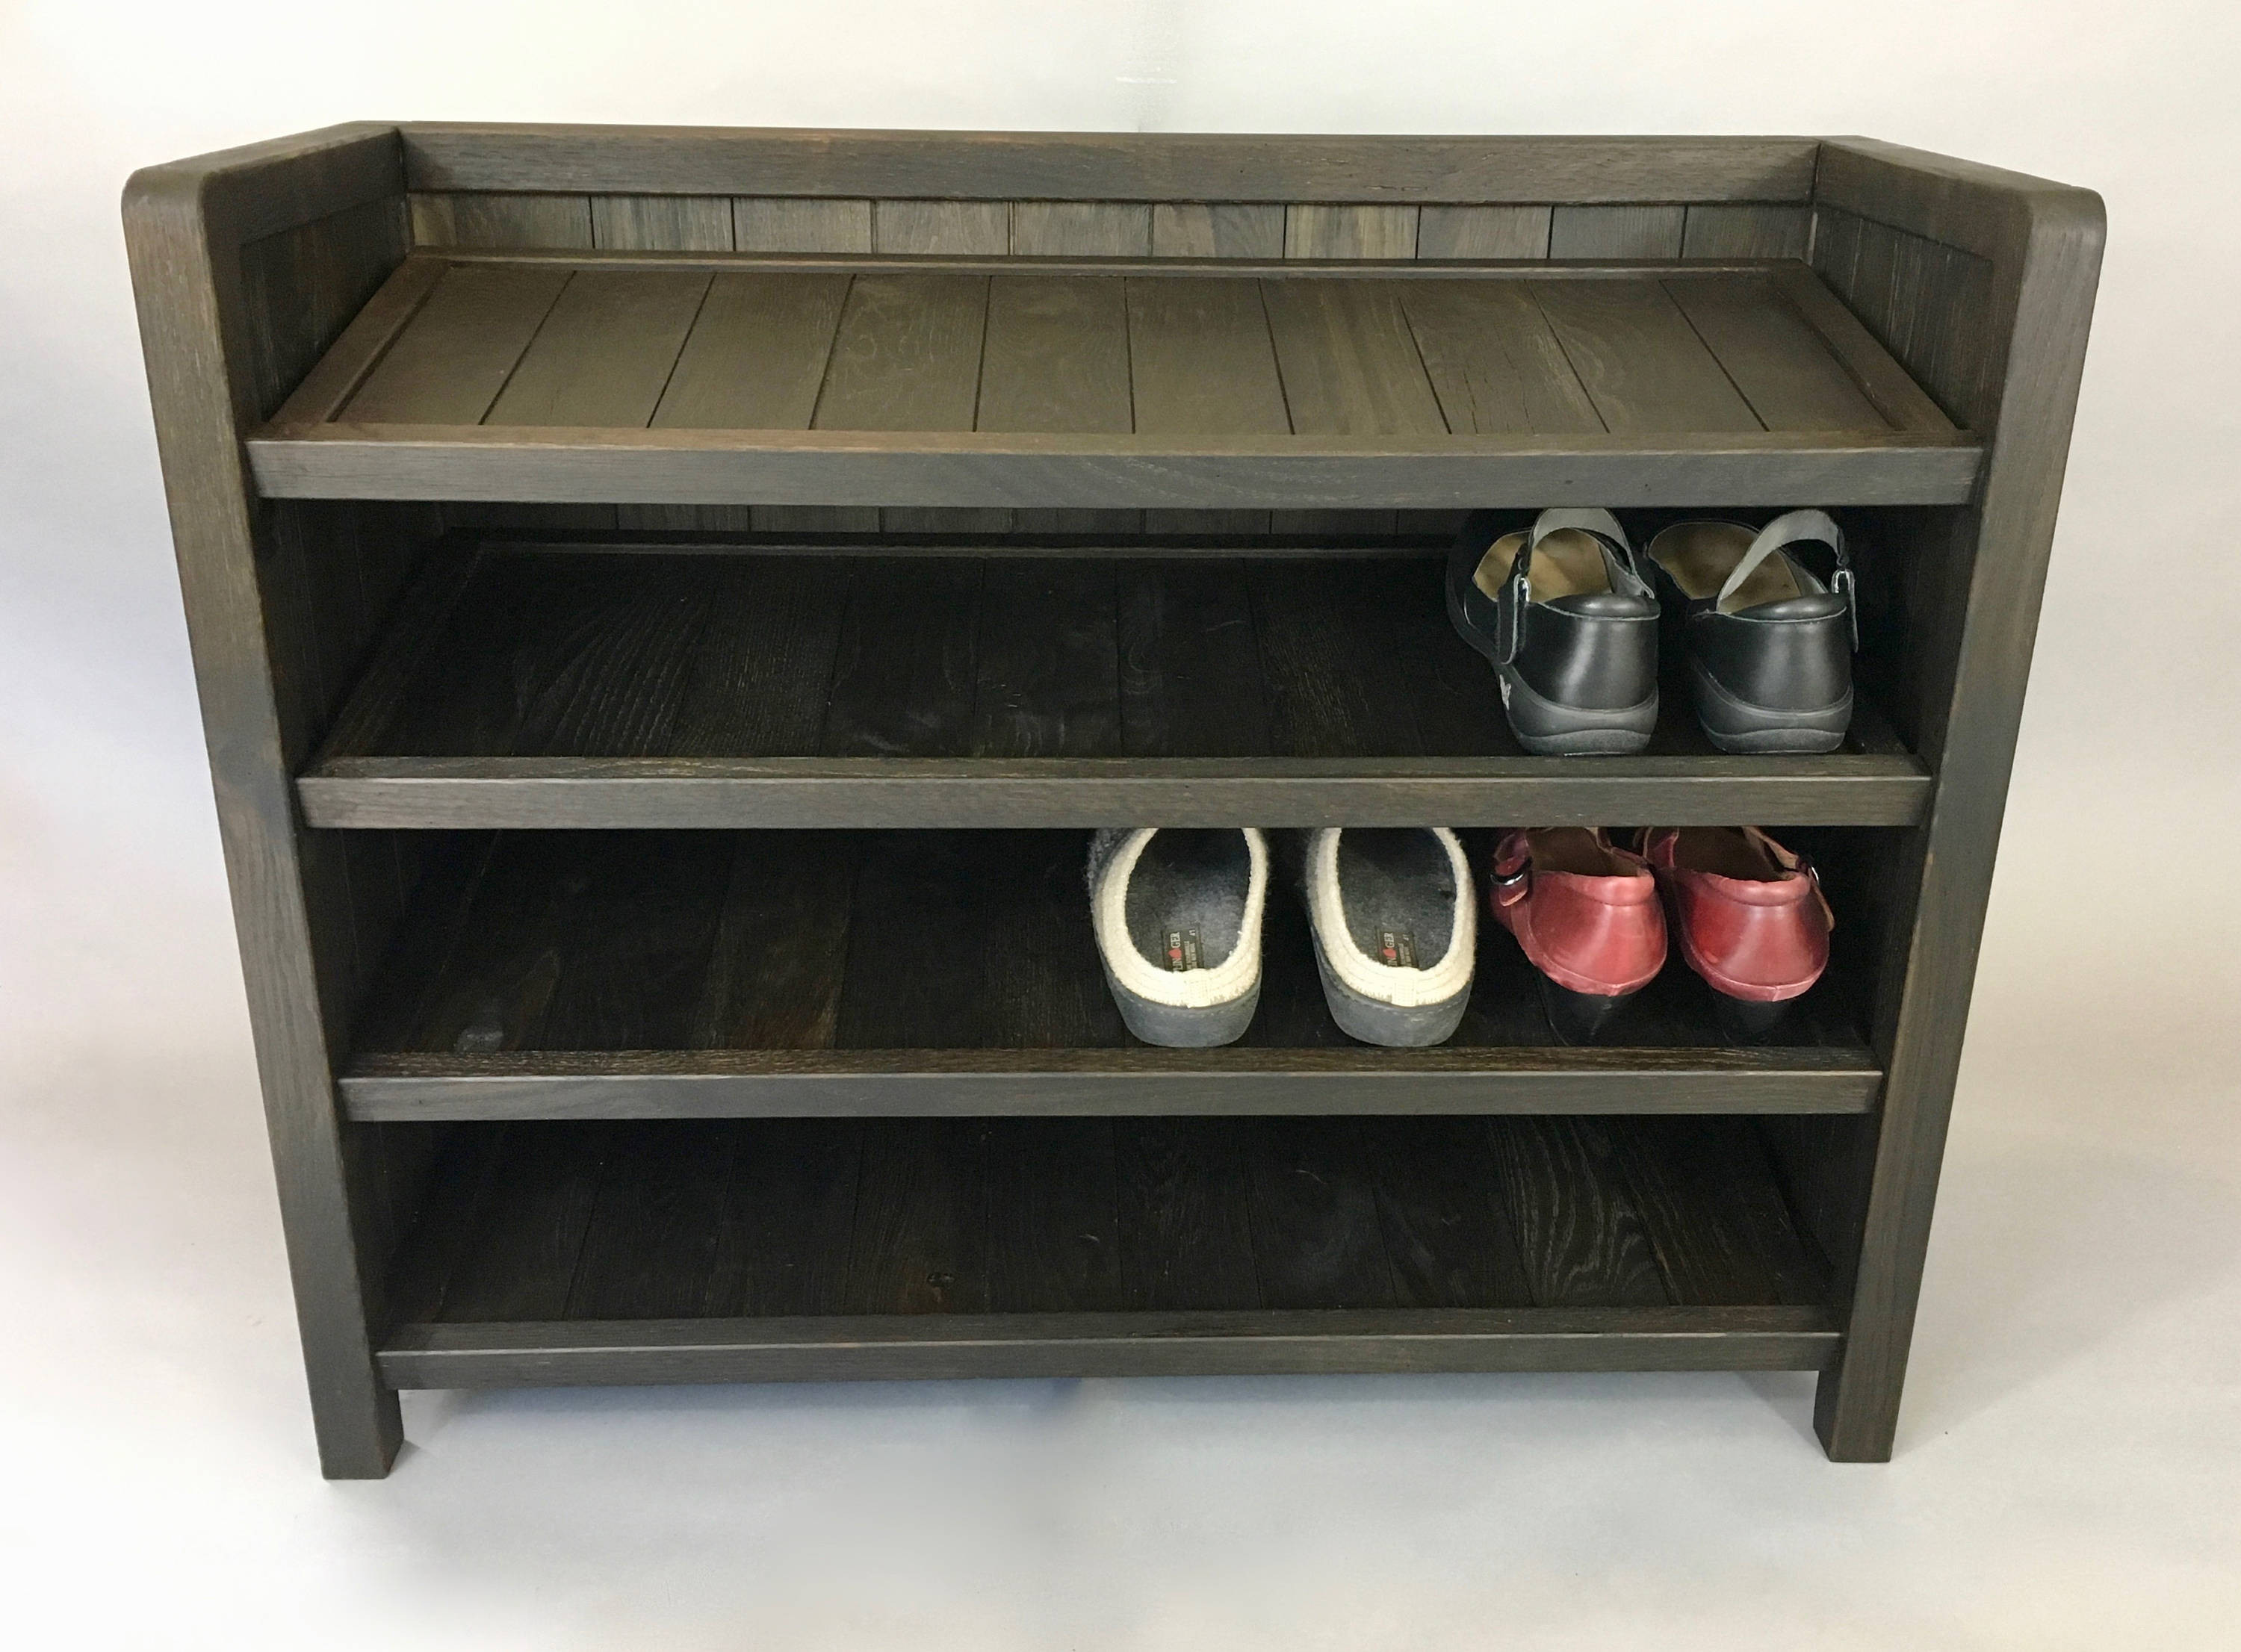 Best ideas about Entryway Shoe Rack . Save or Pin Solid Wood Shoe Rack made with Reclaimed Oak with Now.